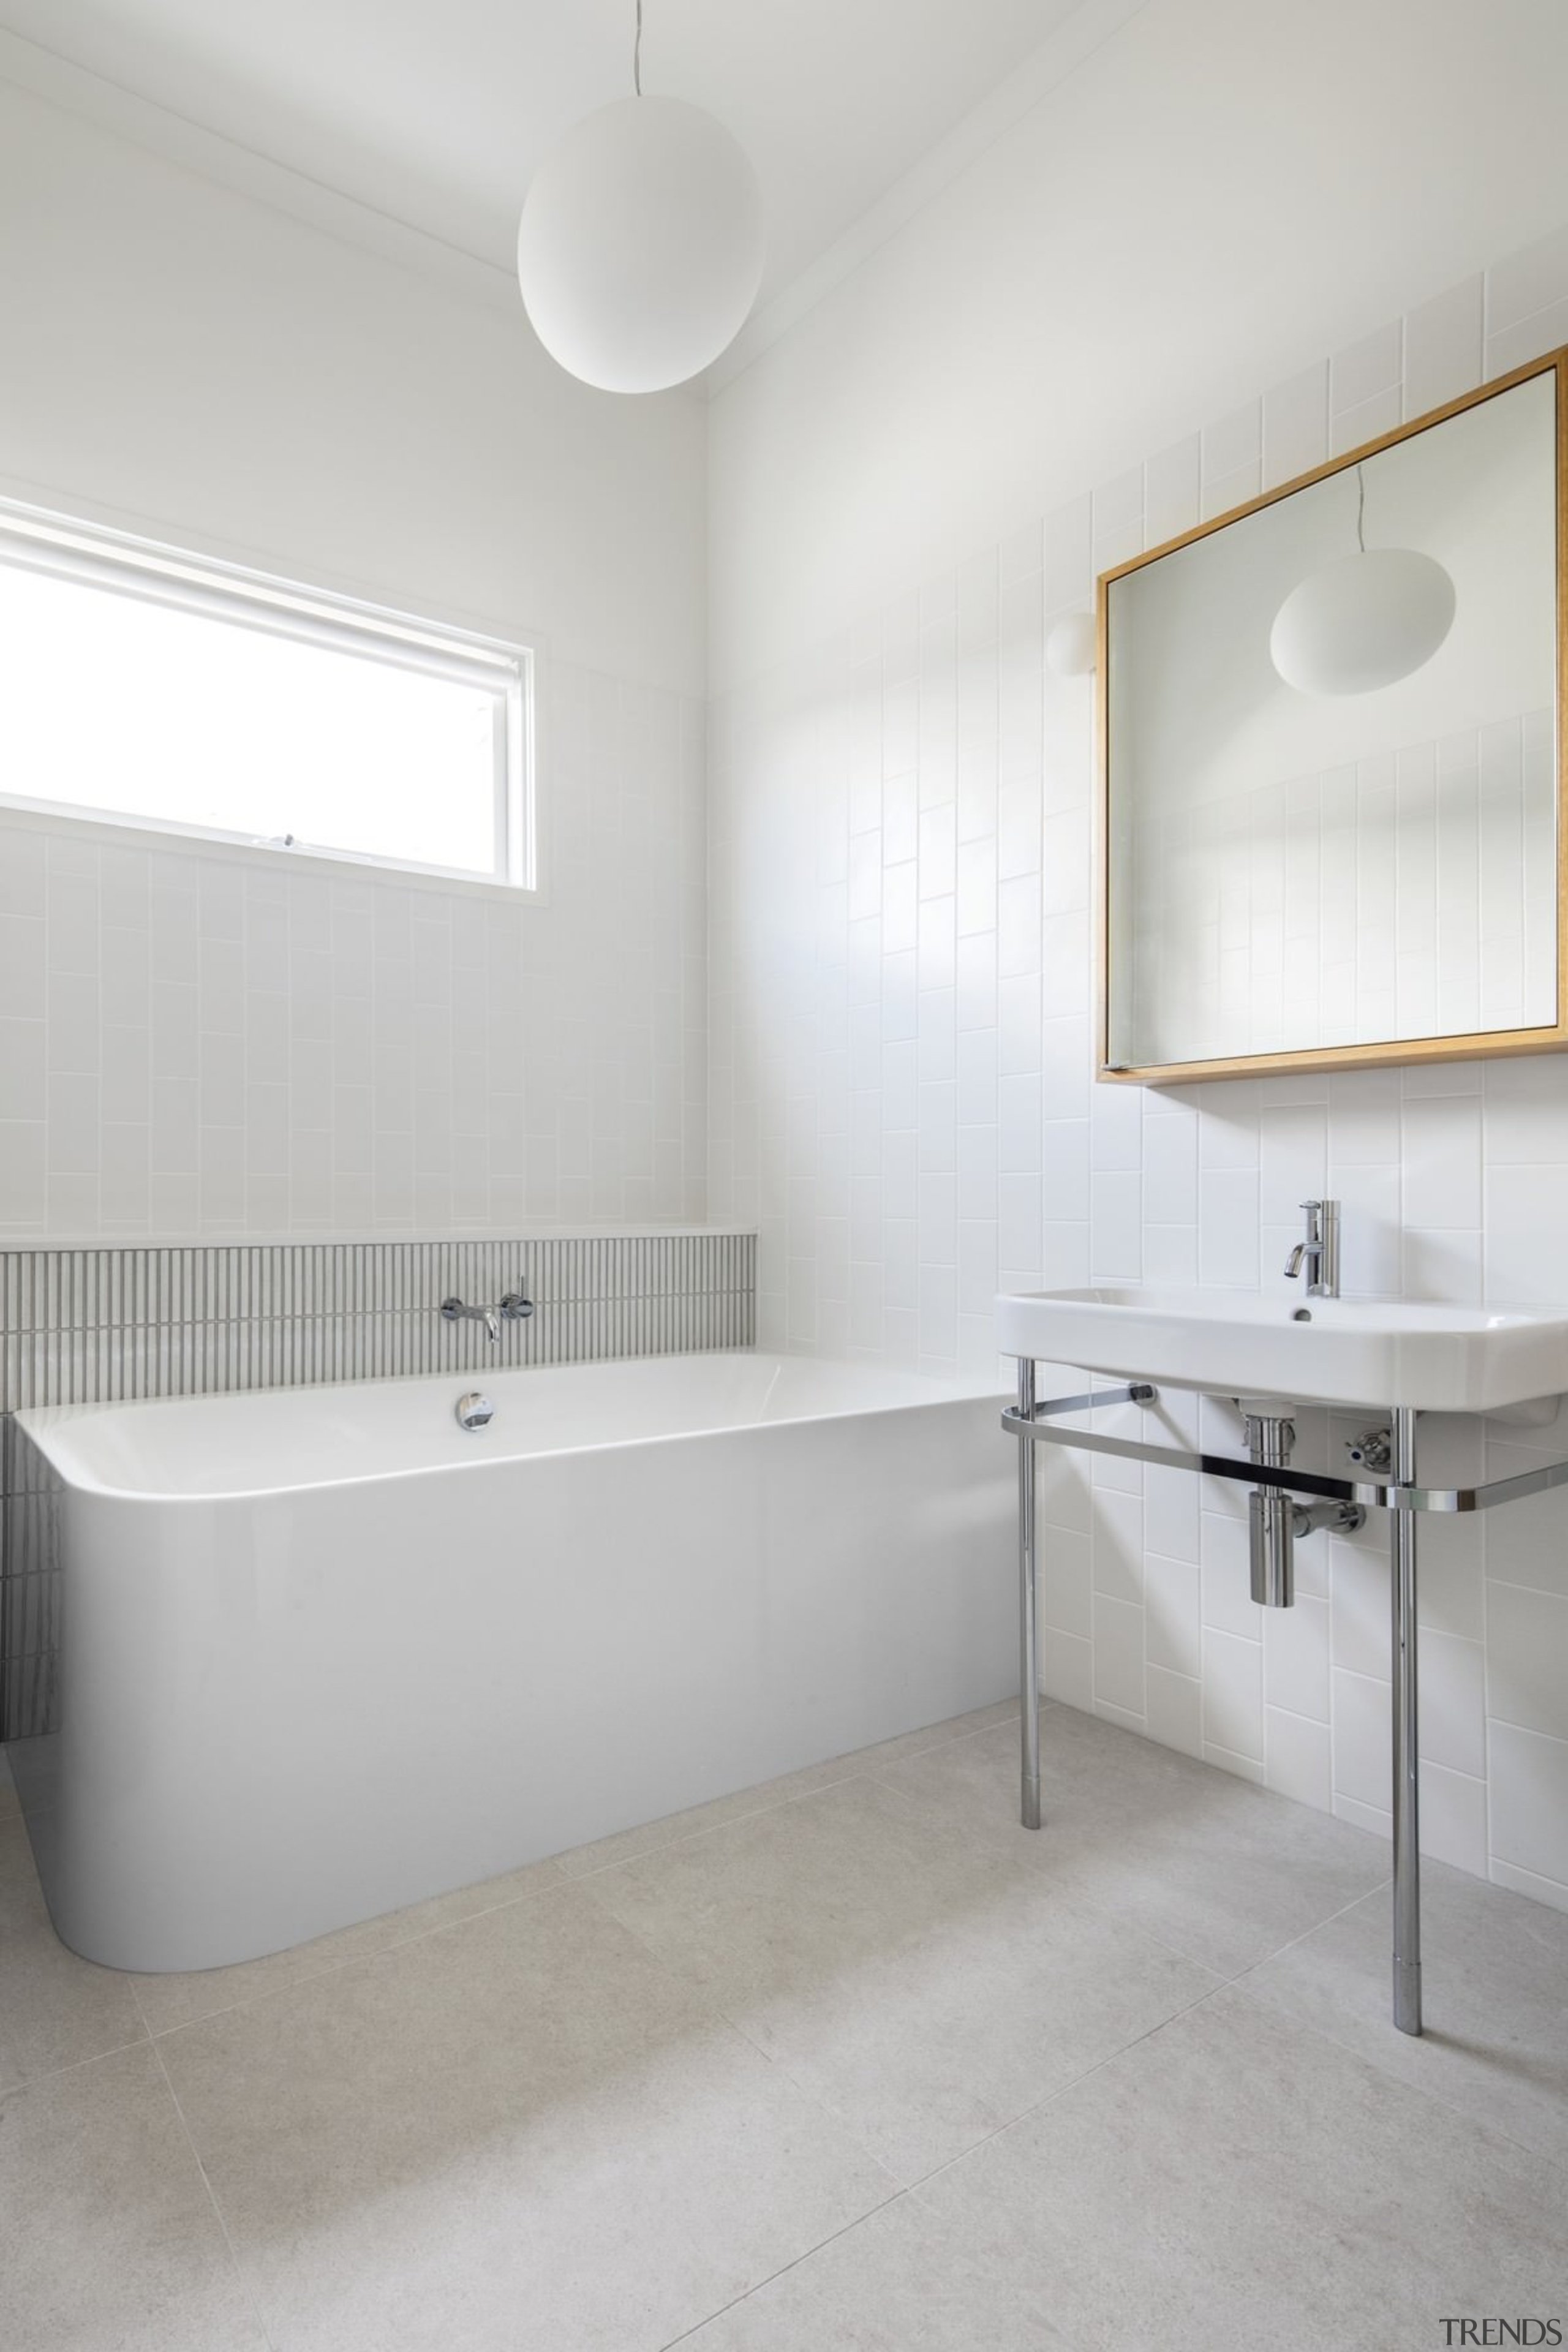 The bathroom features a globe light and simple, architecture, bathroom, bathroom sink, floor, interior design, plumbing fixture, product design, room, sink, tap, tile, wall, gray